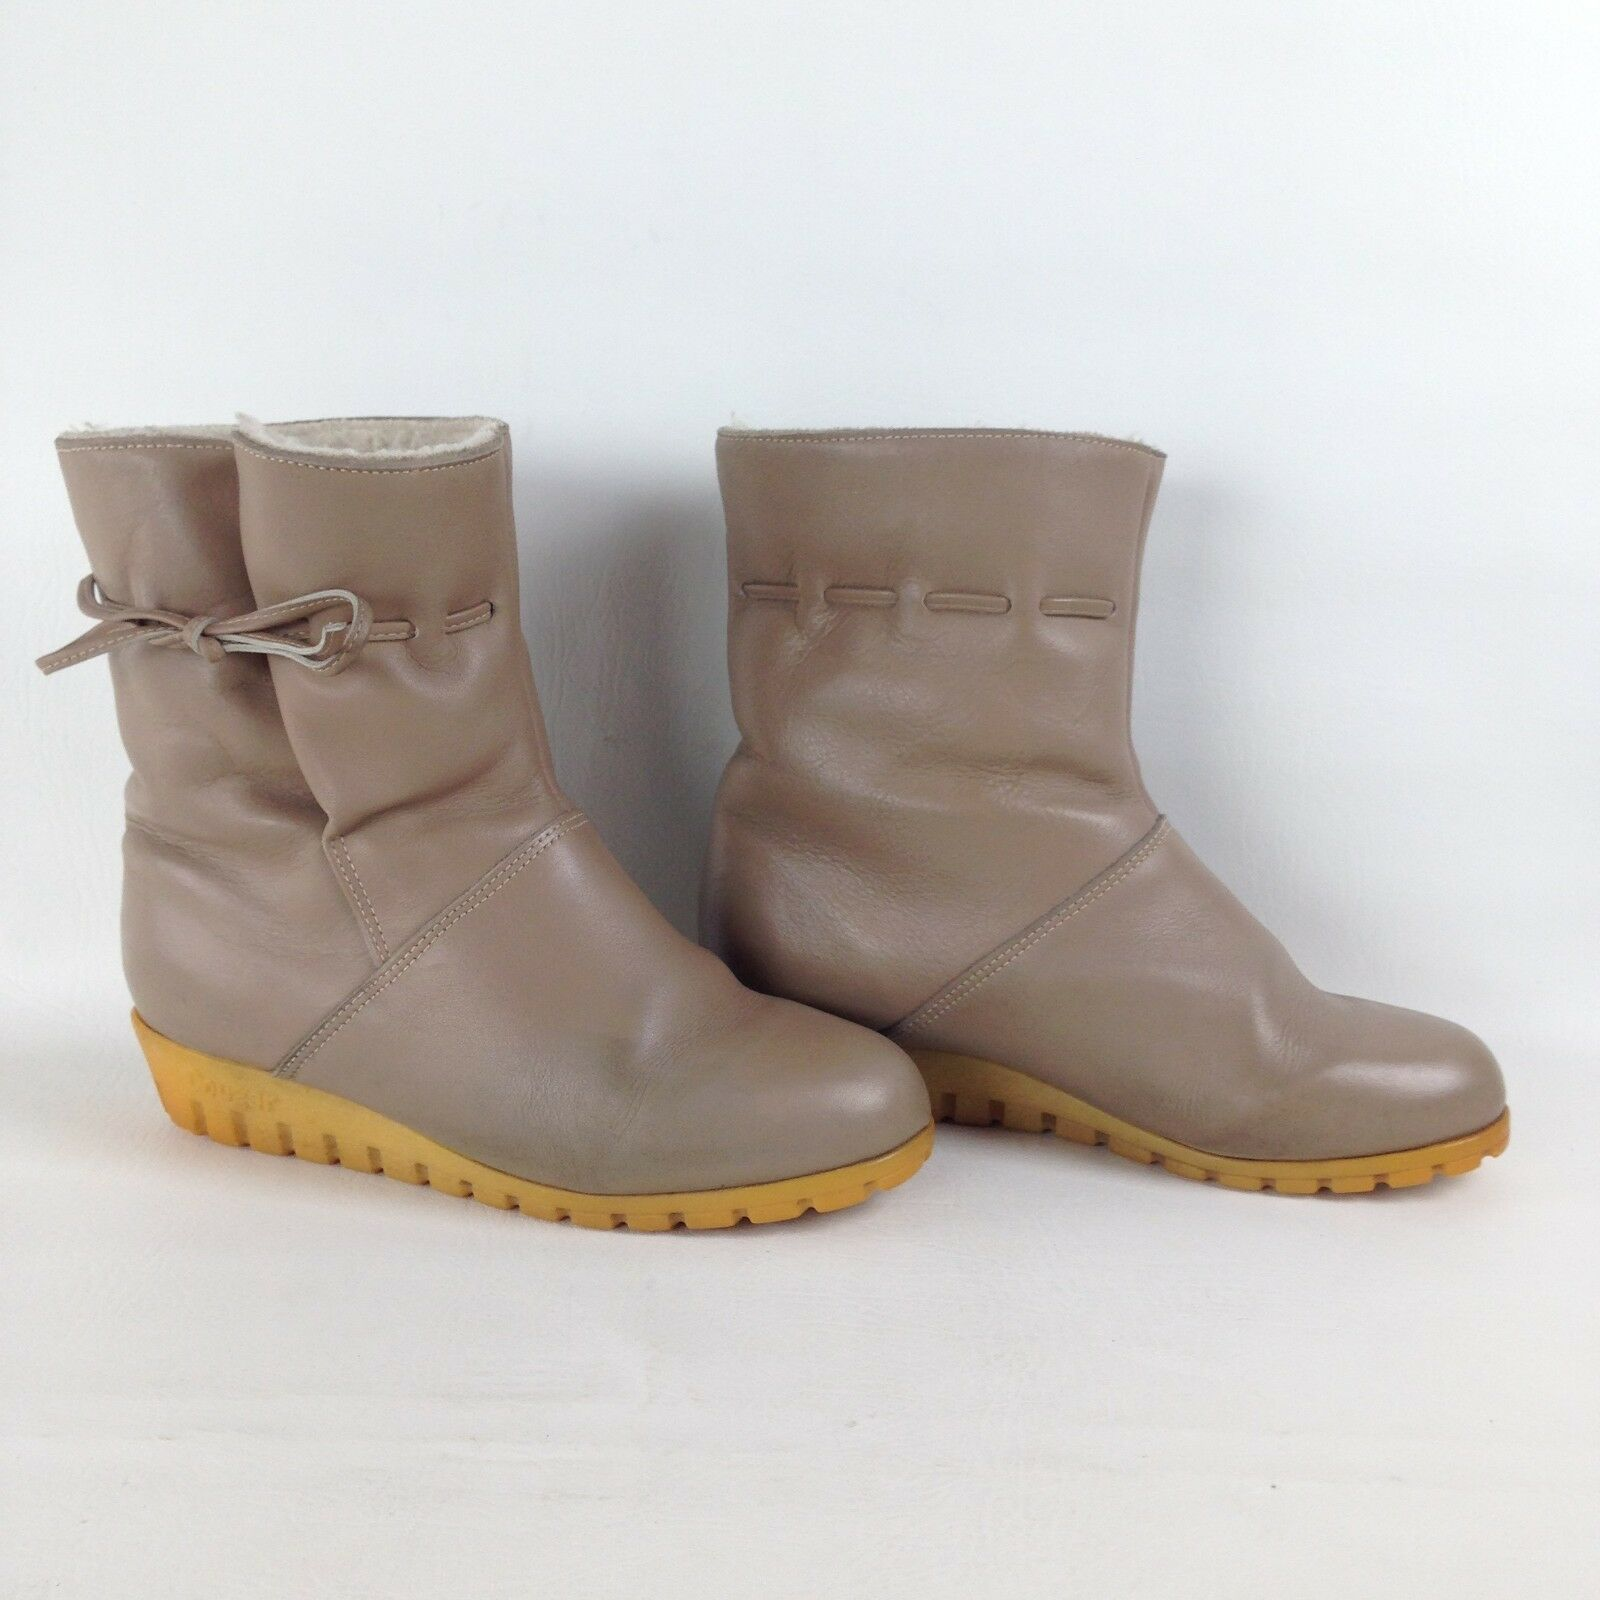 COUGAR BEIGE LEATHER WINTER FASHION ANKLE BOOTS LINED SNOW SHOES WOMENS SZ 6.5